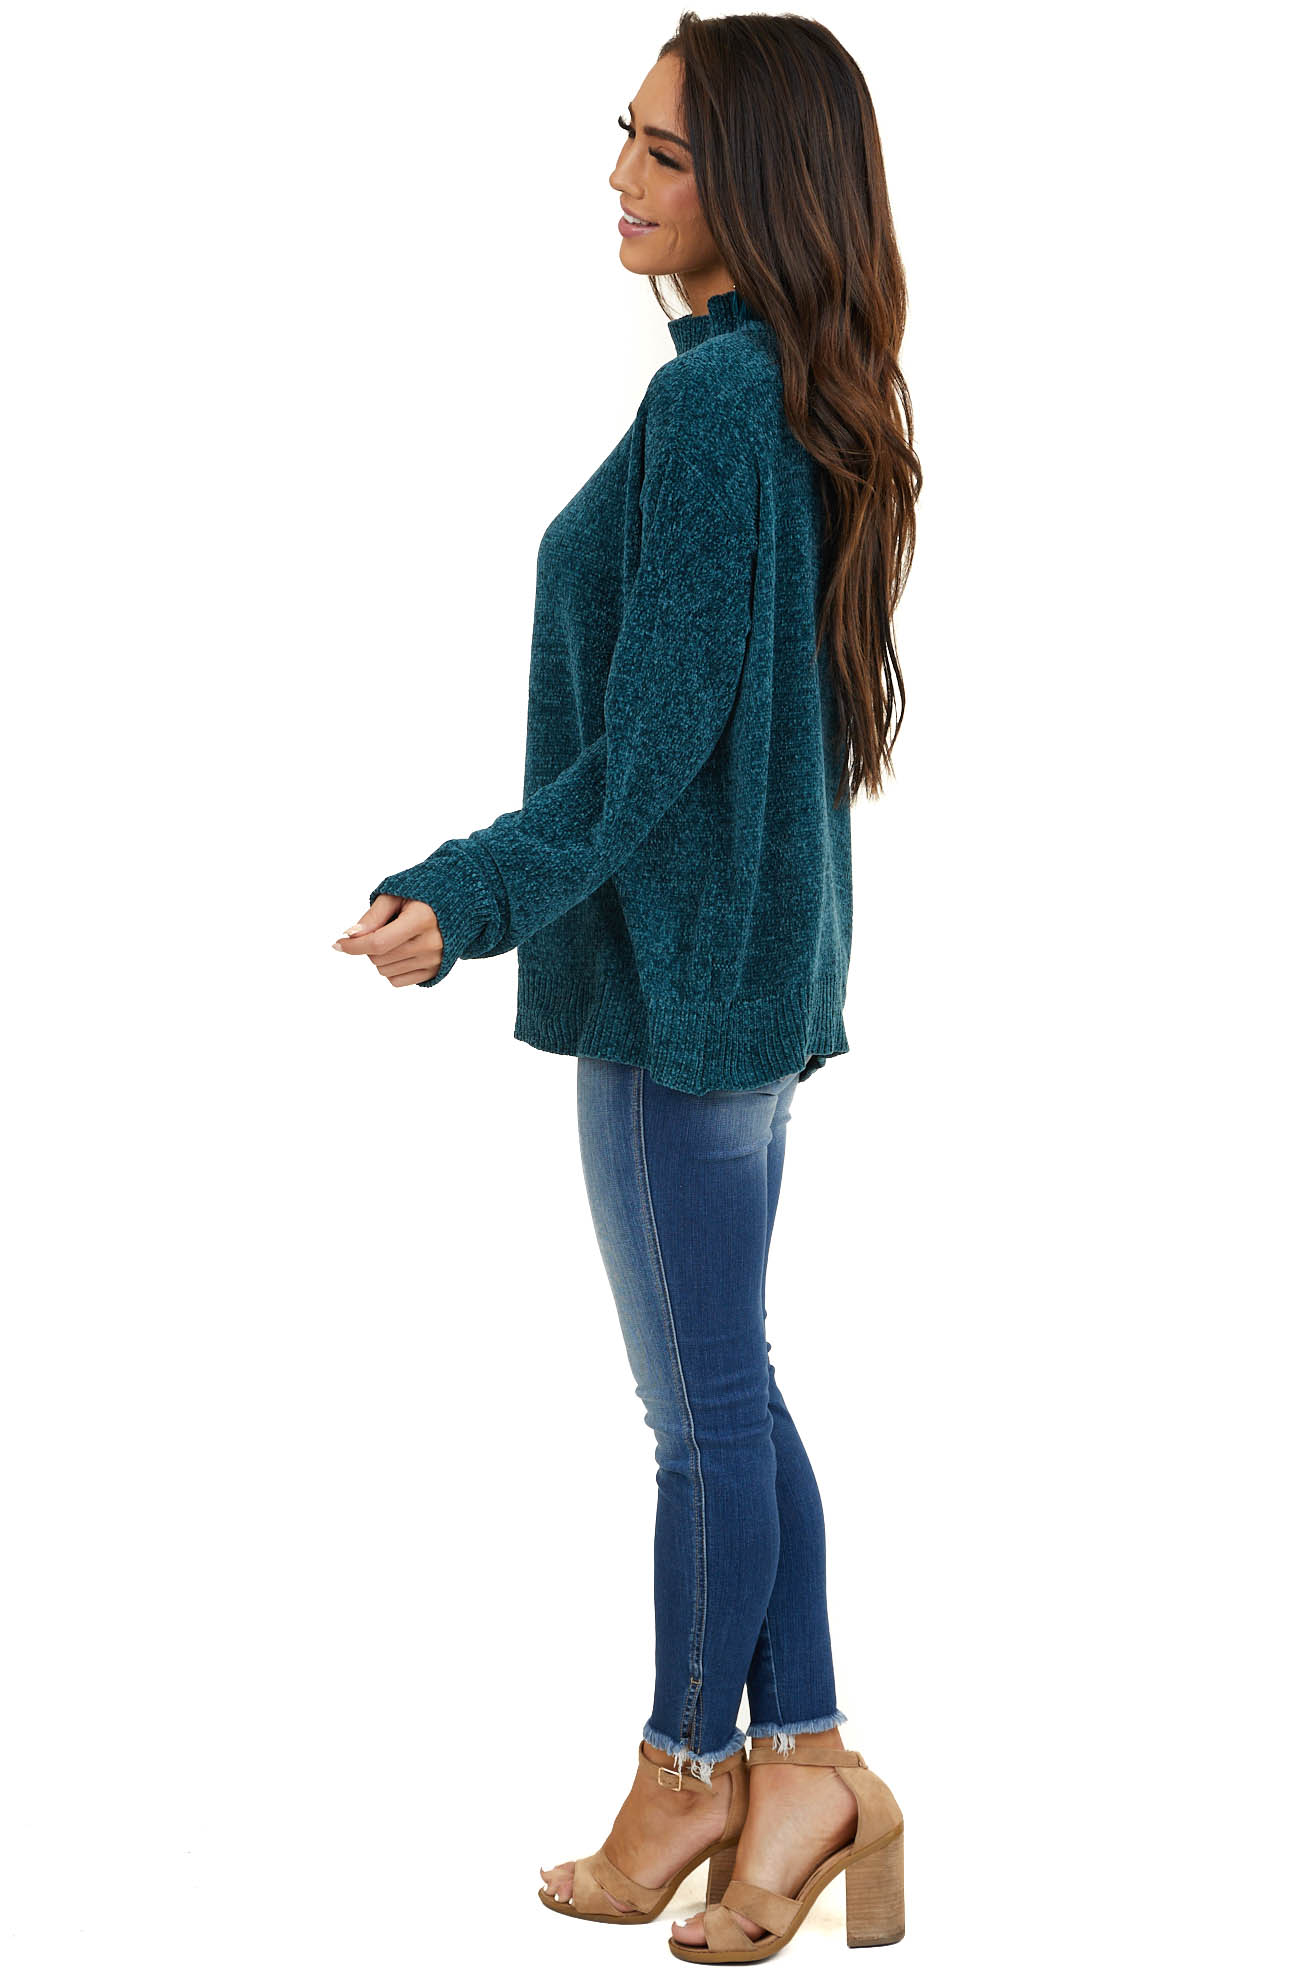 Dark Teal Cold Shoulder Chenille Sweater with Long Sleeves